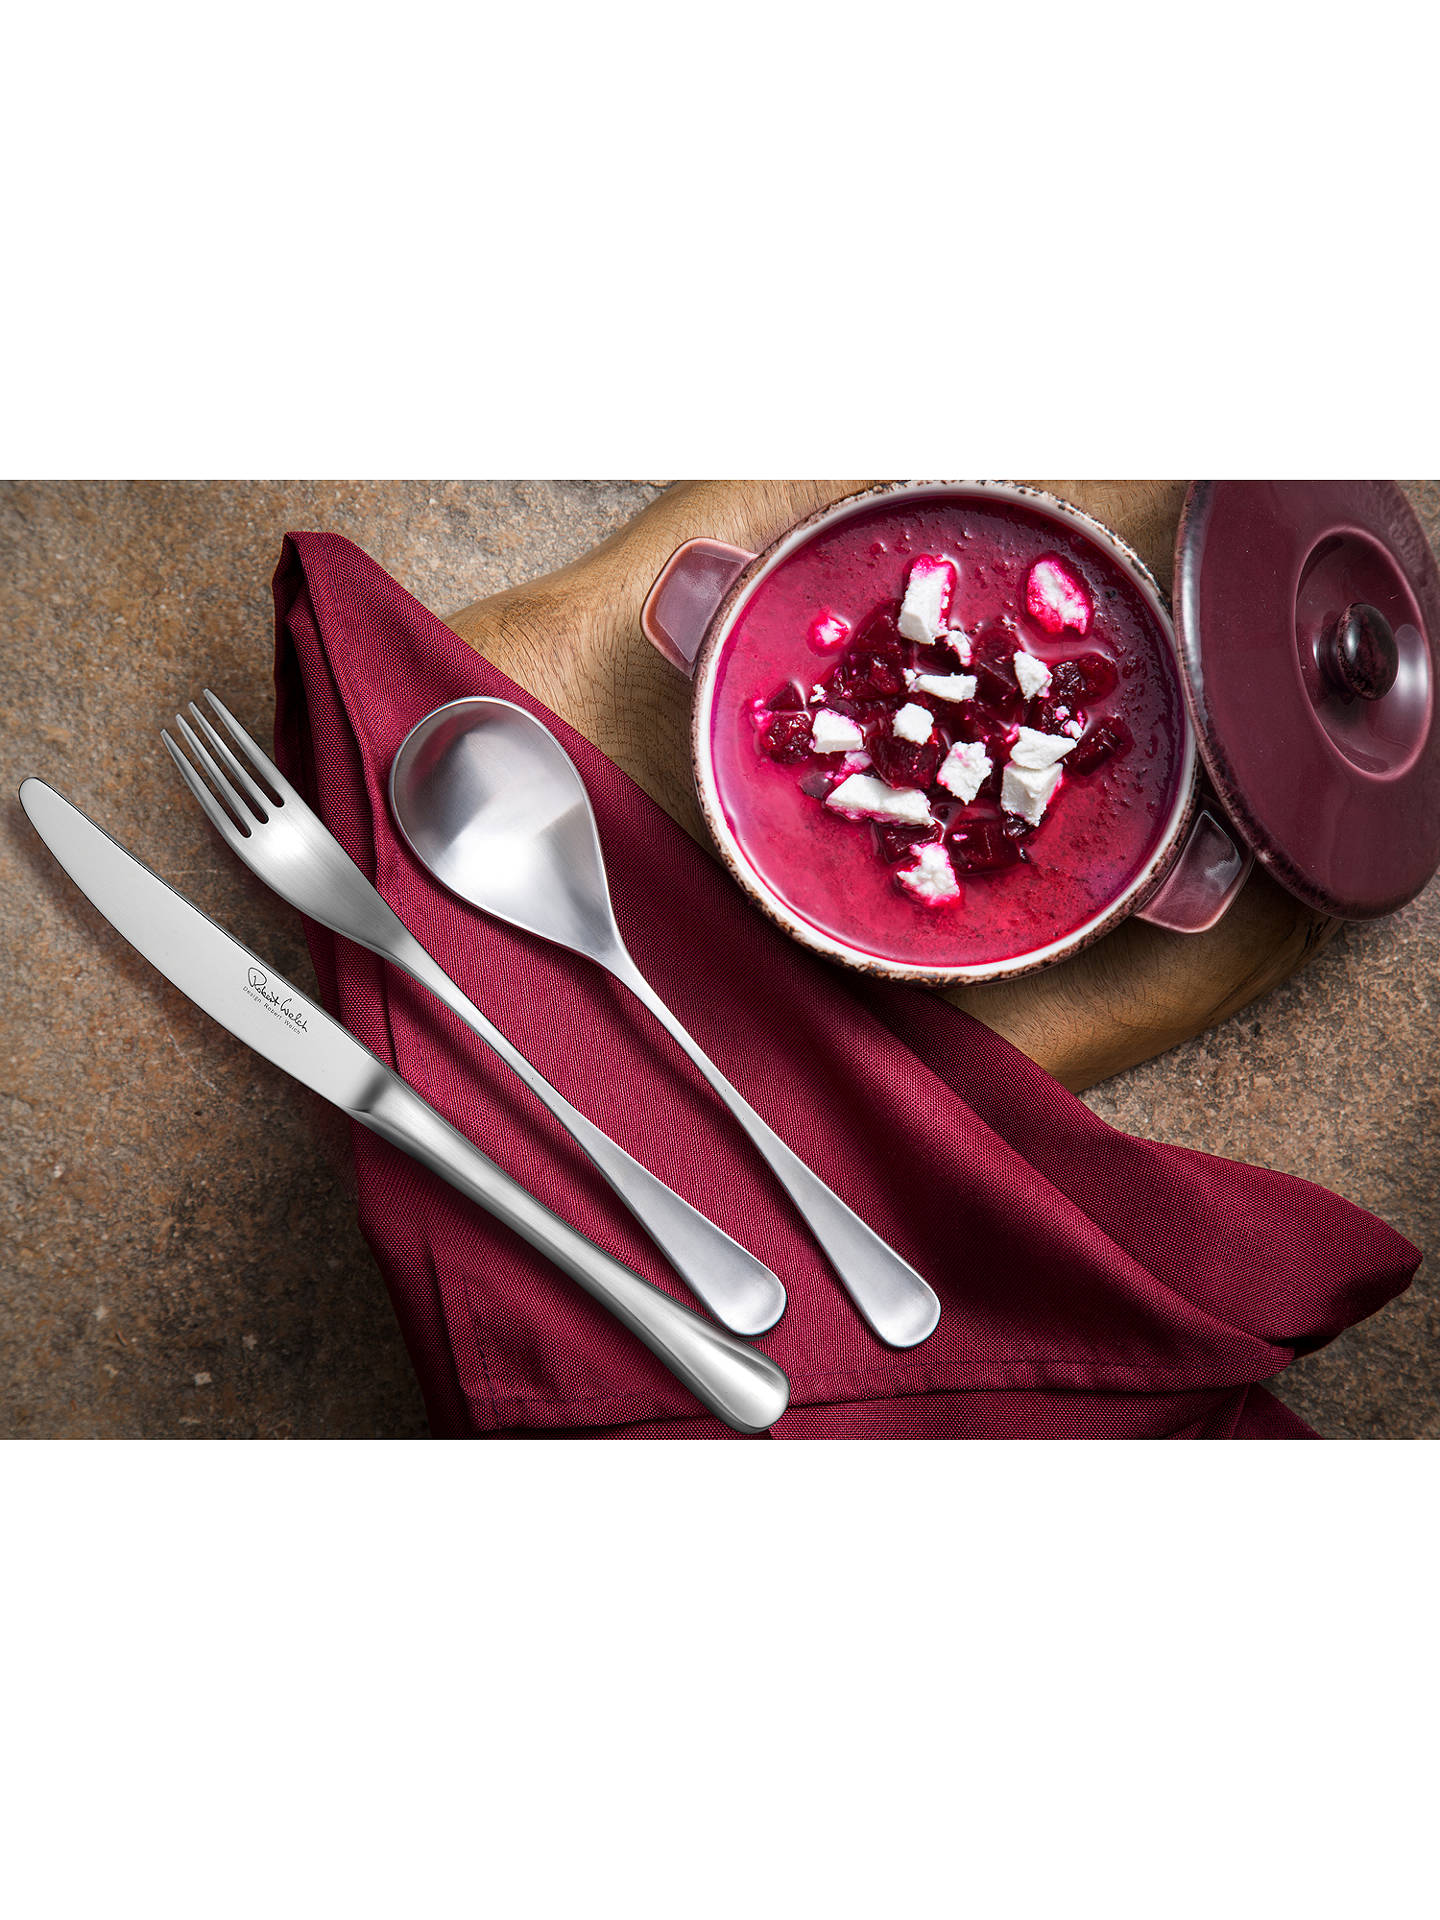 Buy Robert Welch RW2 Satin Table Knife Online at johnlewis.com